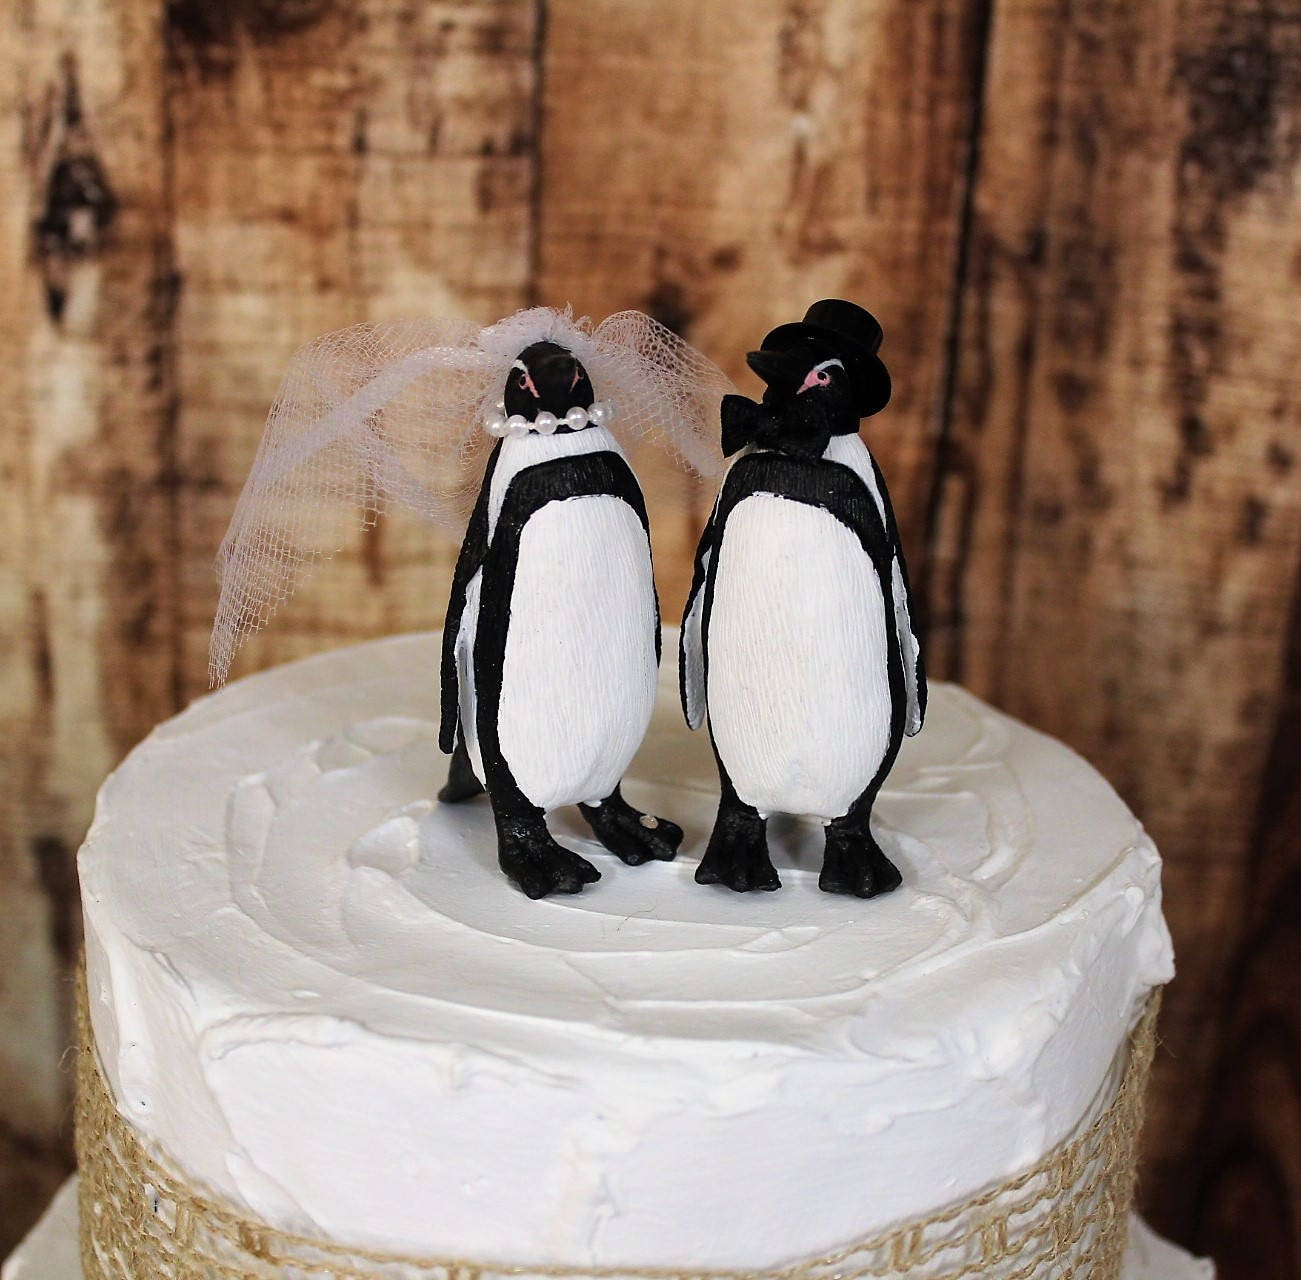 Penguin Wedding Cake Topper, Unique Cake Topper, Bride and Groom ...